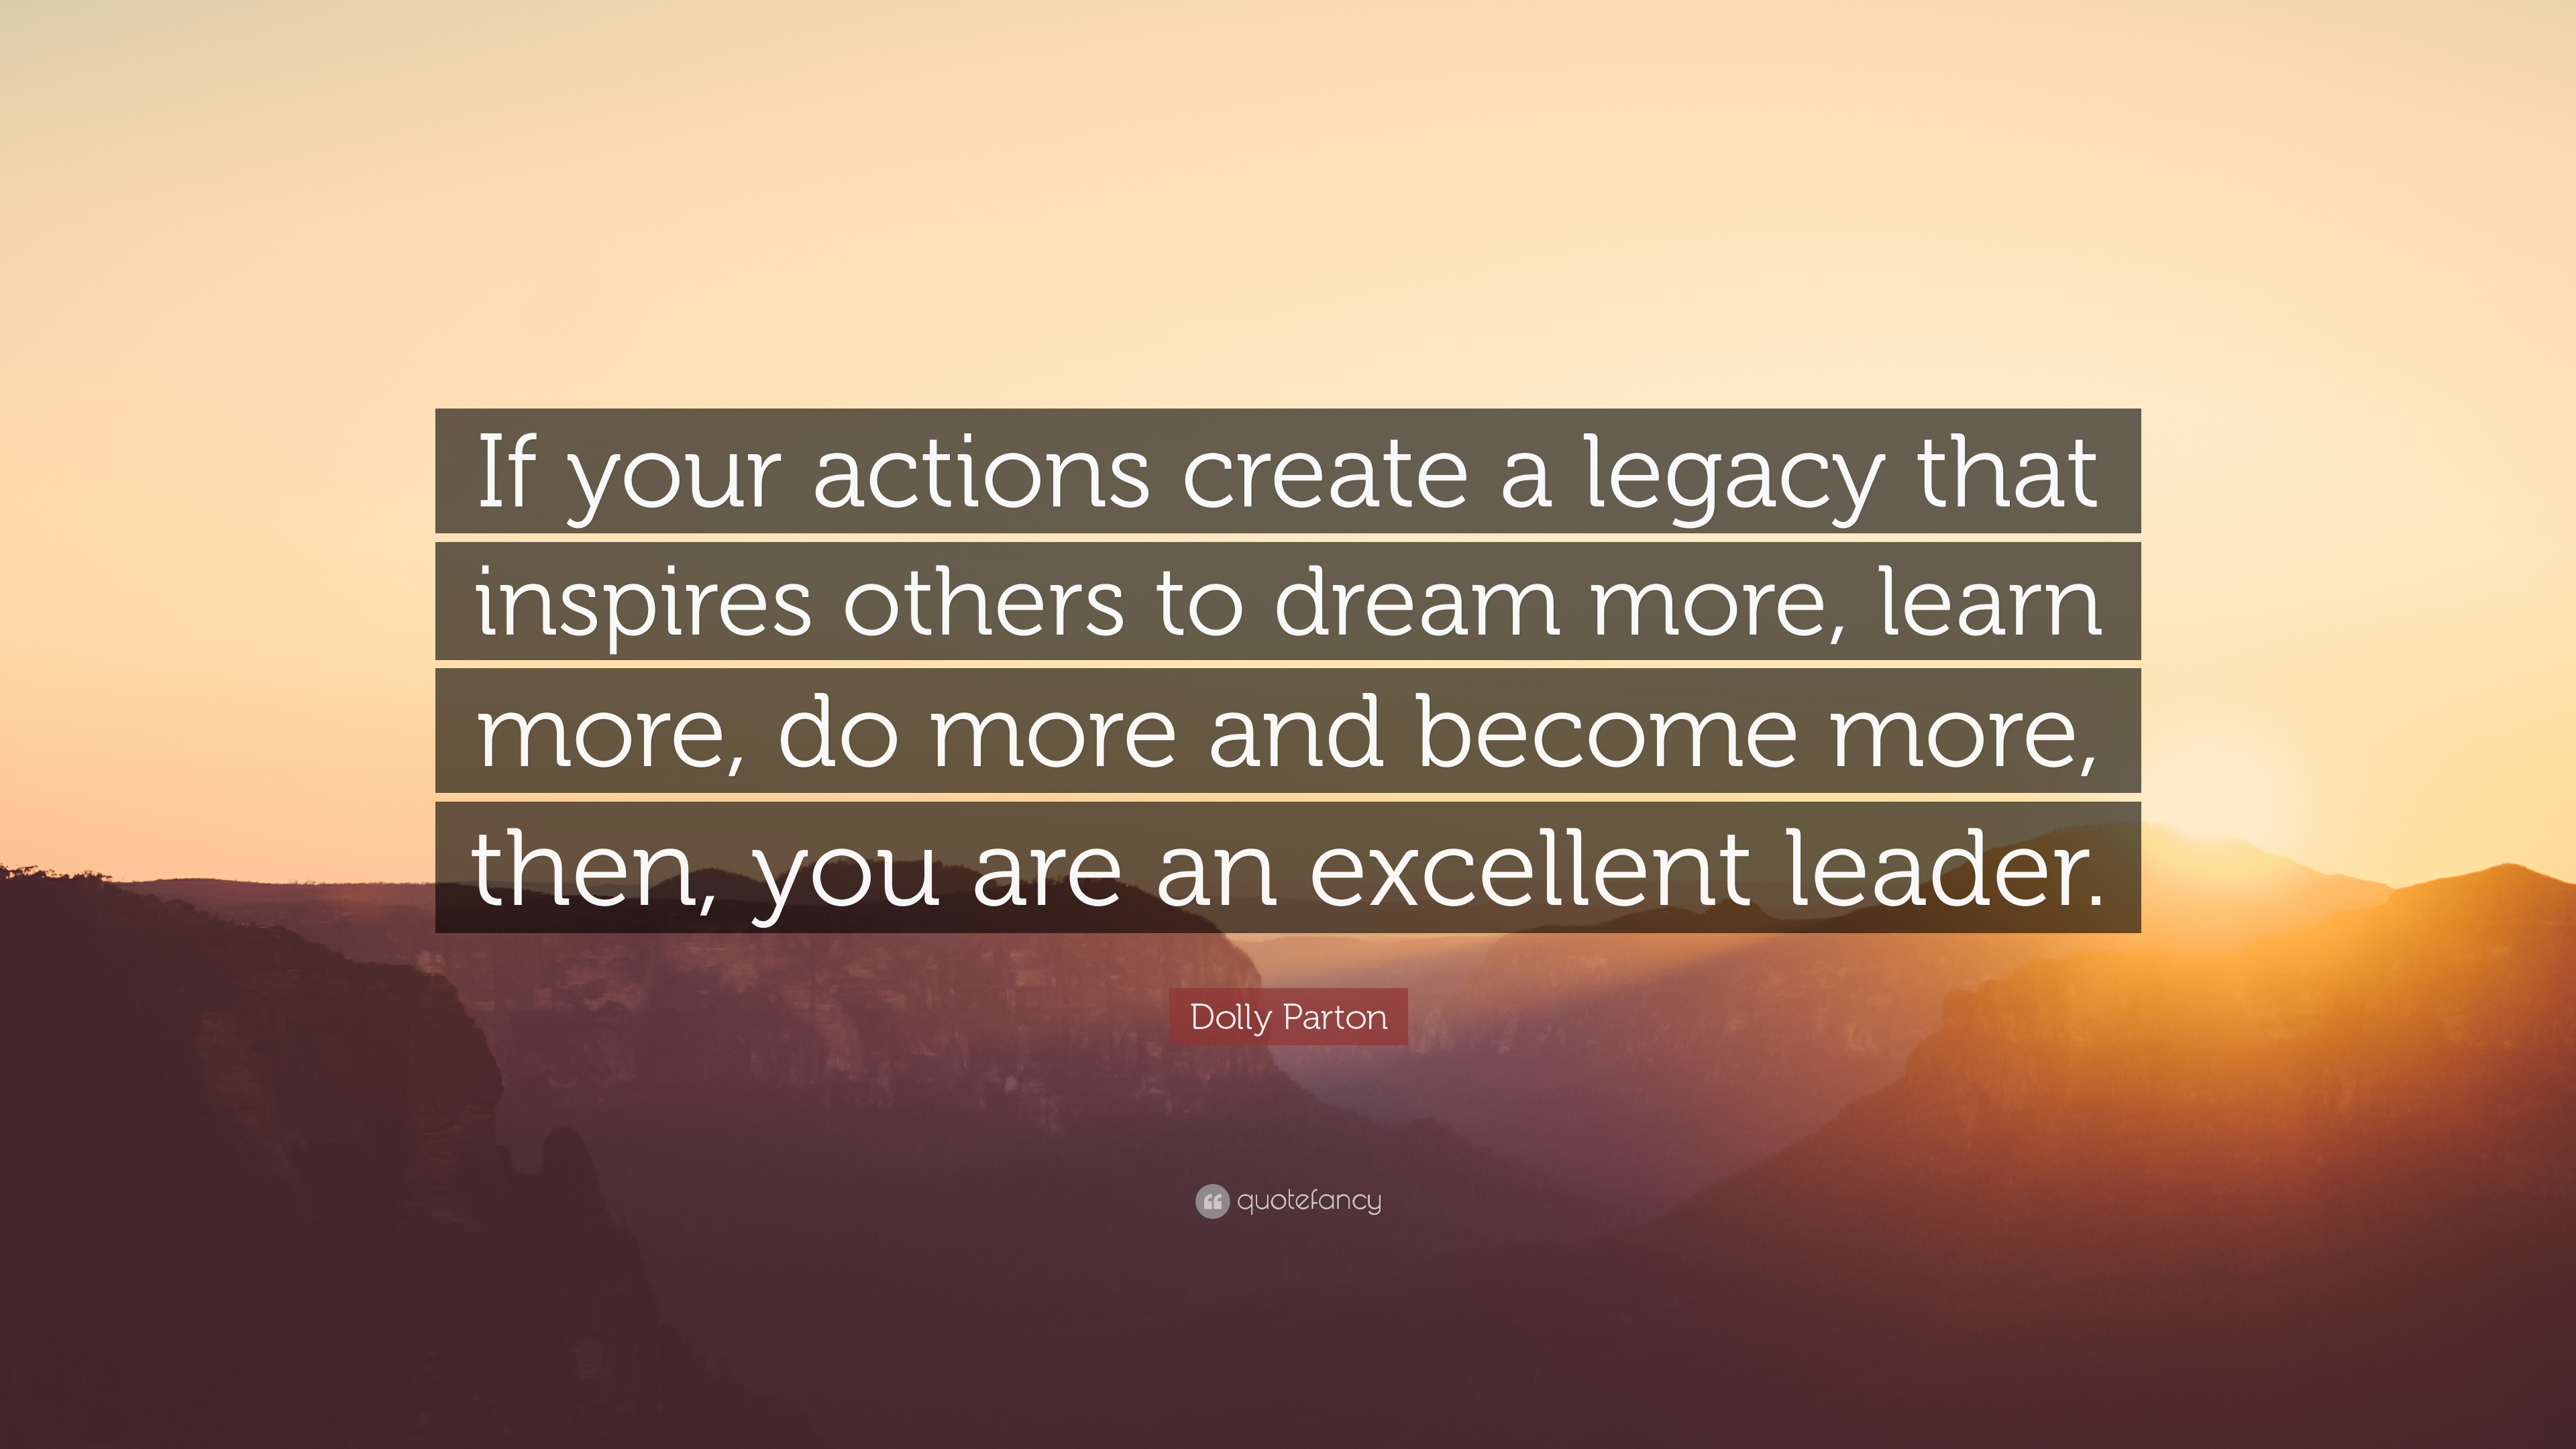 Excellent Wallpapers With Quotes Dolly Parton Quote If Your Actions Create A Legacy That